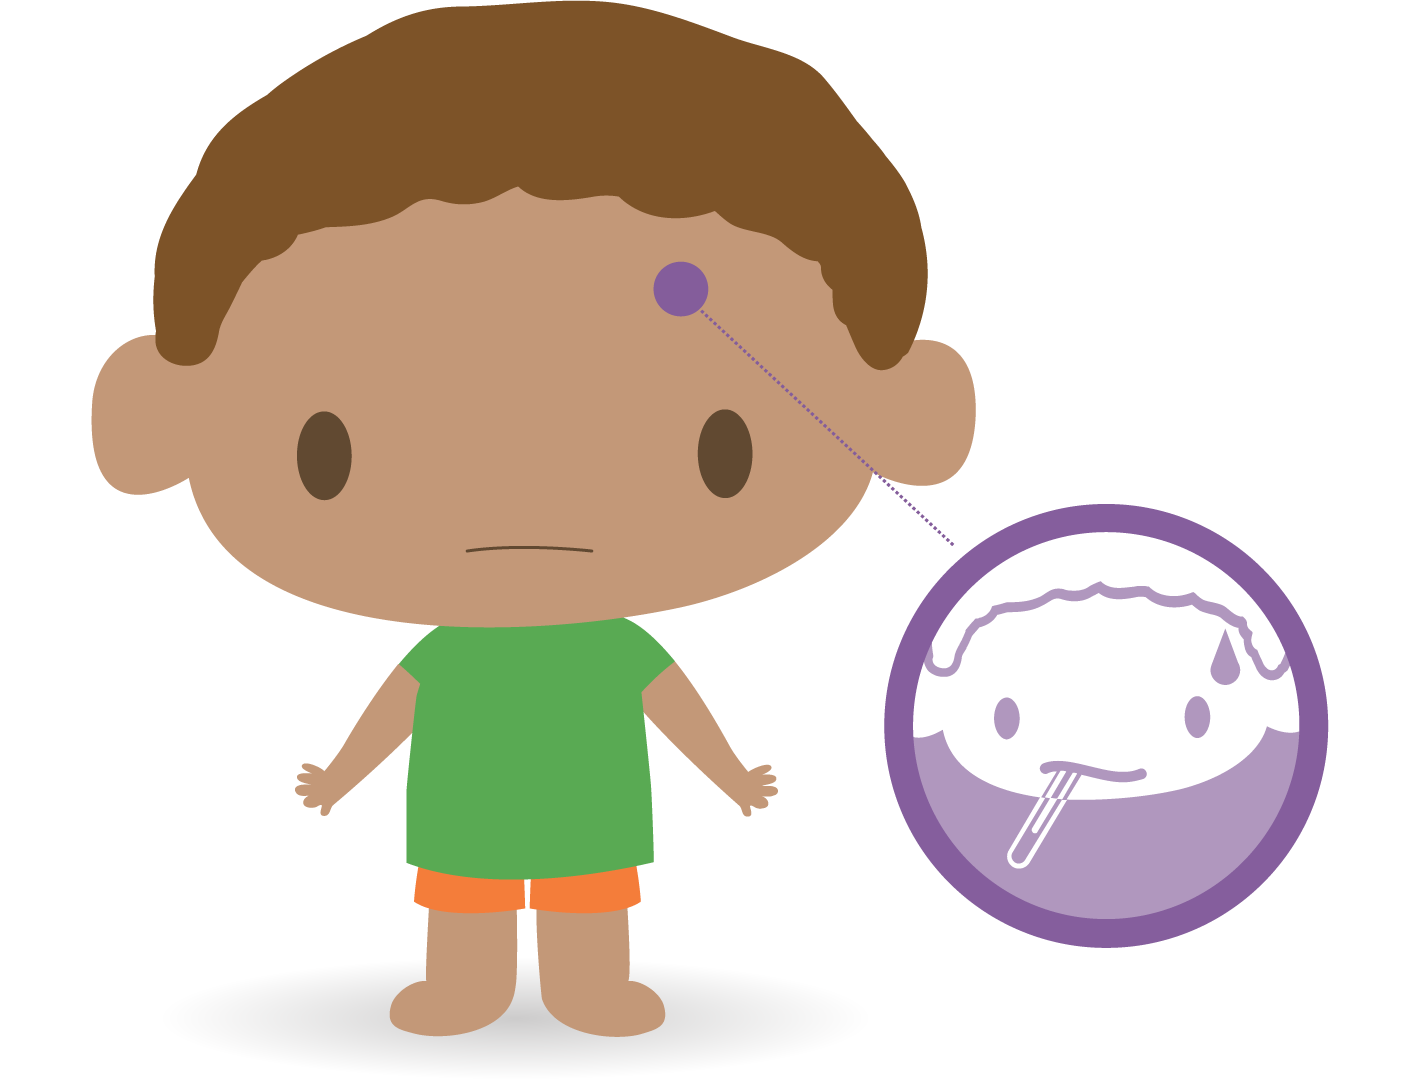 Medication clipart baby medicine. Fever alberta health services